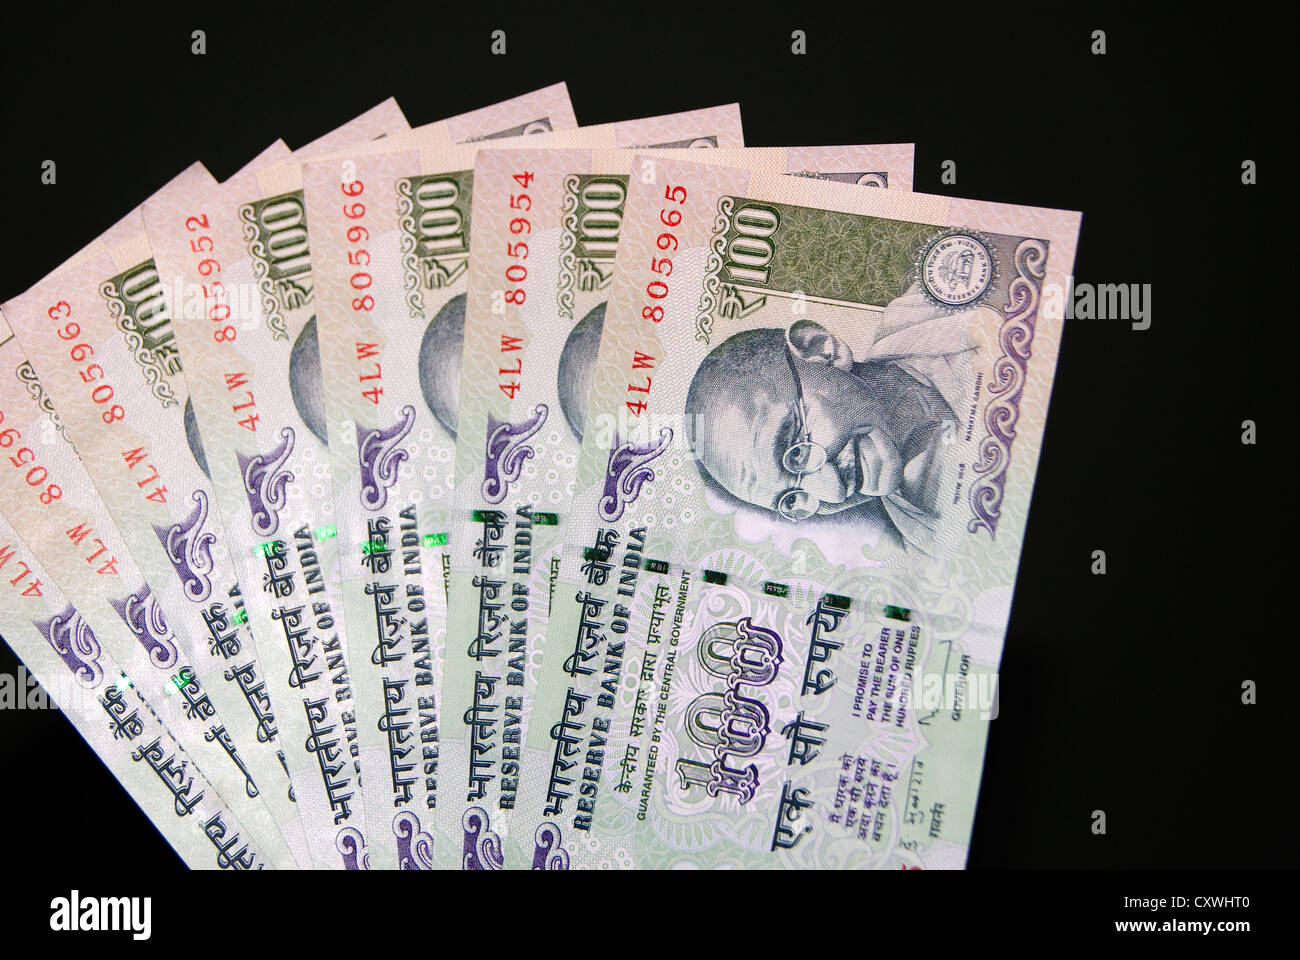 Wiring Money To India Free Diagram For You In Photo Indian Currency 100 Hundred Rupees Reserve Bank Of Online Services Western Union